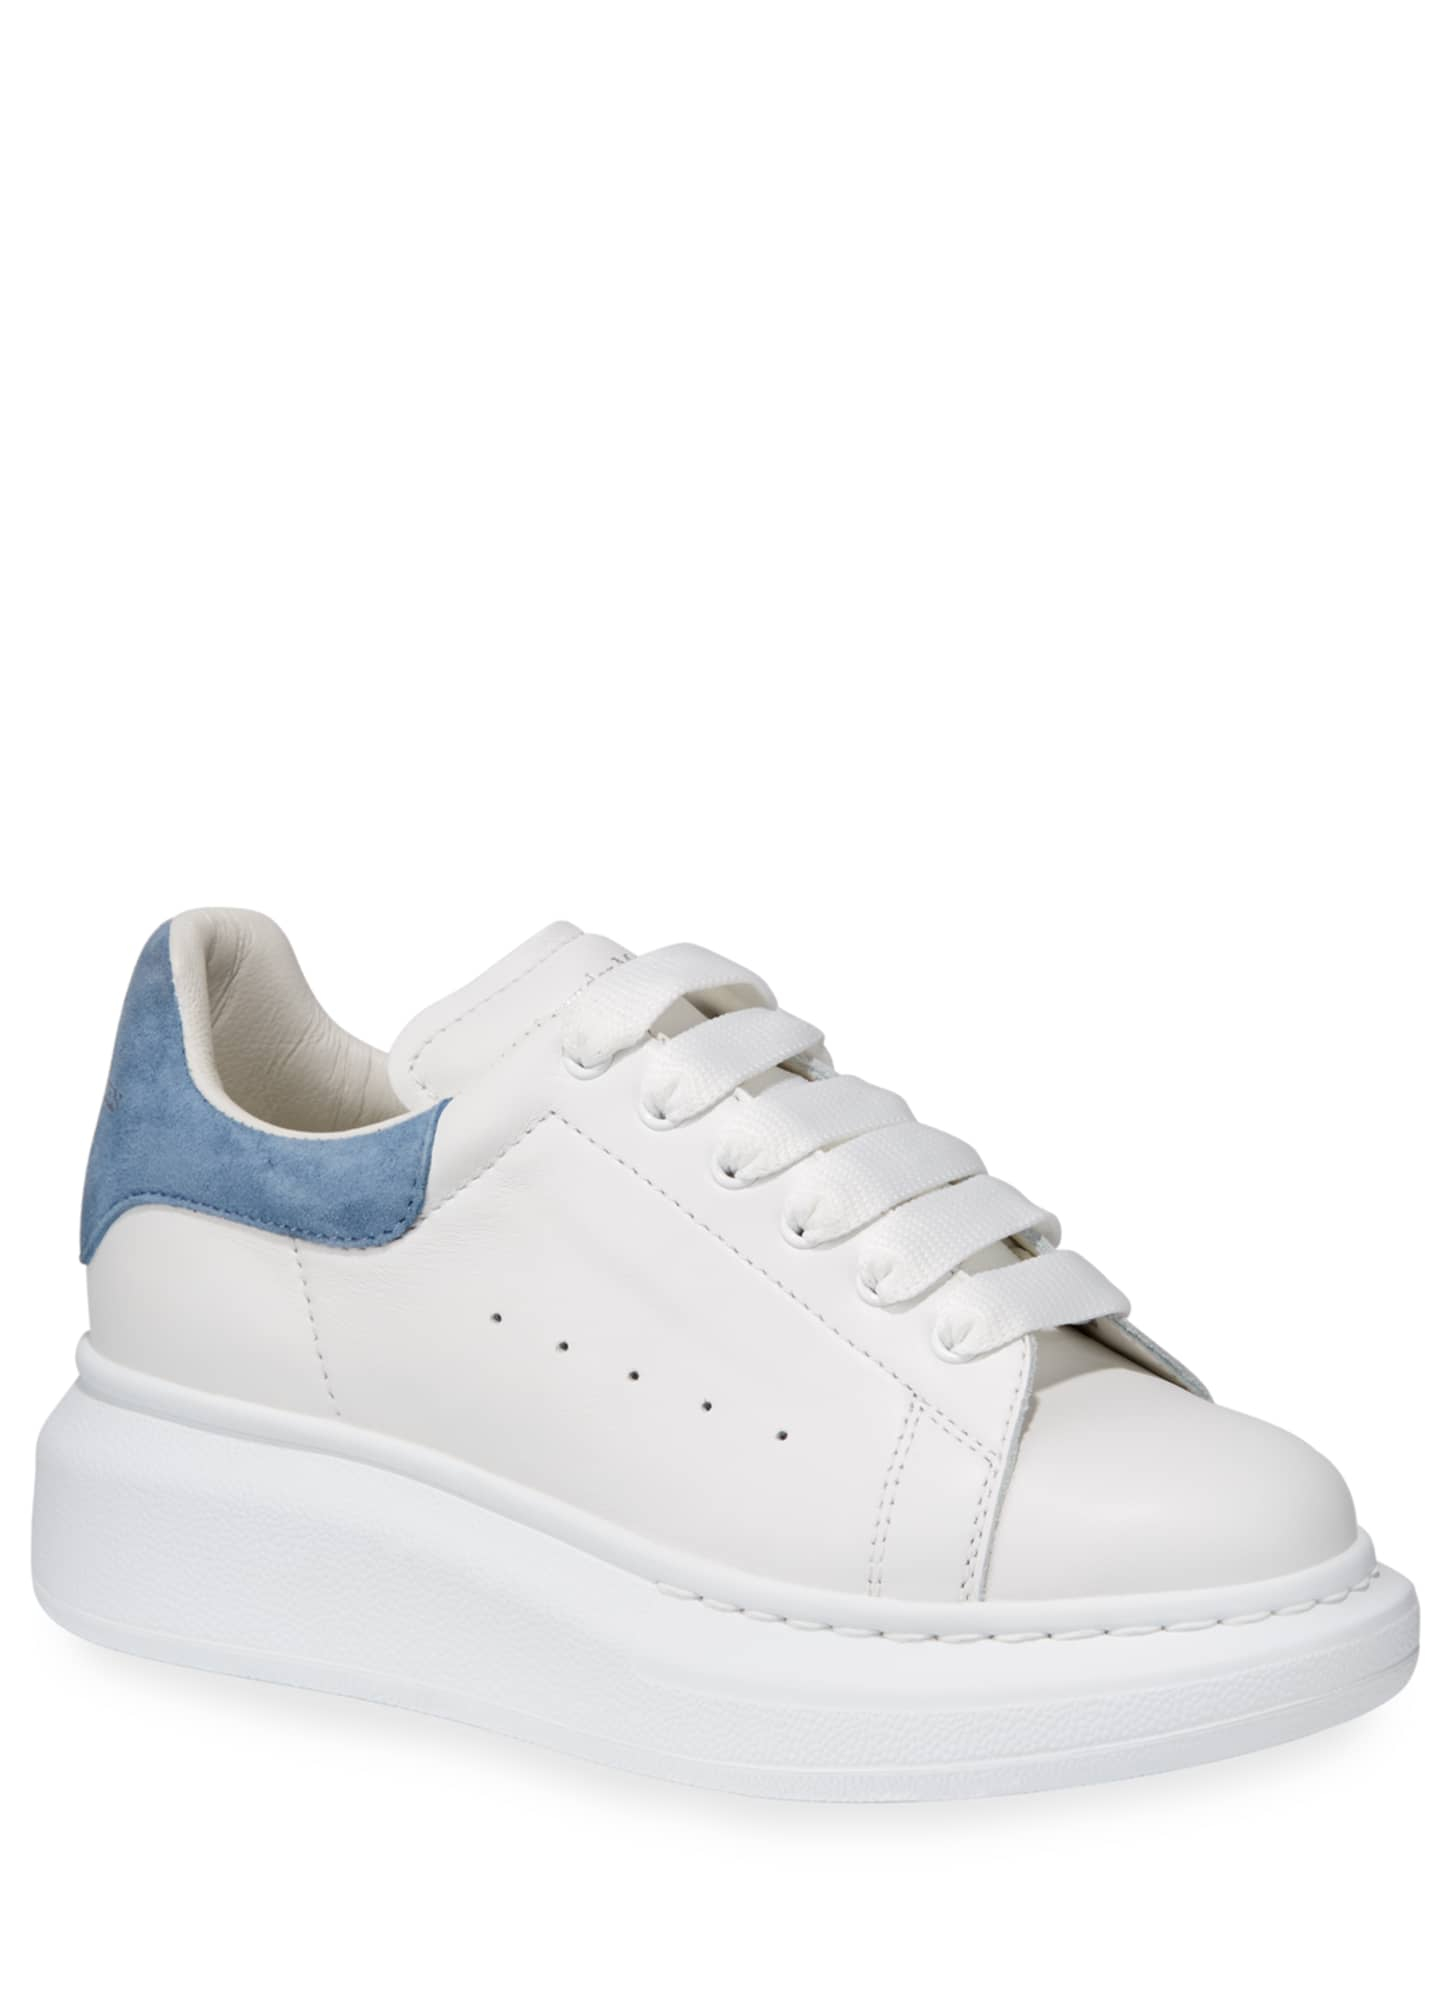 Image 1 of 4: Oversized Leather Sneakers, Toddler/Kids